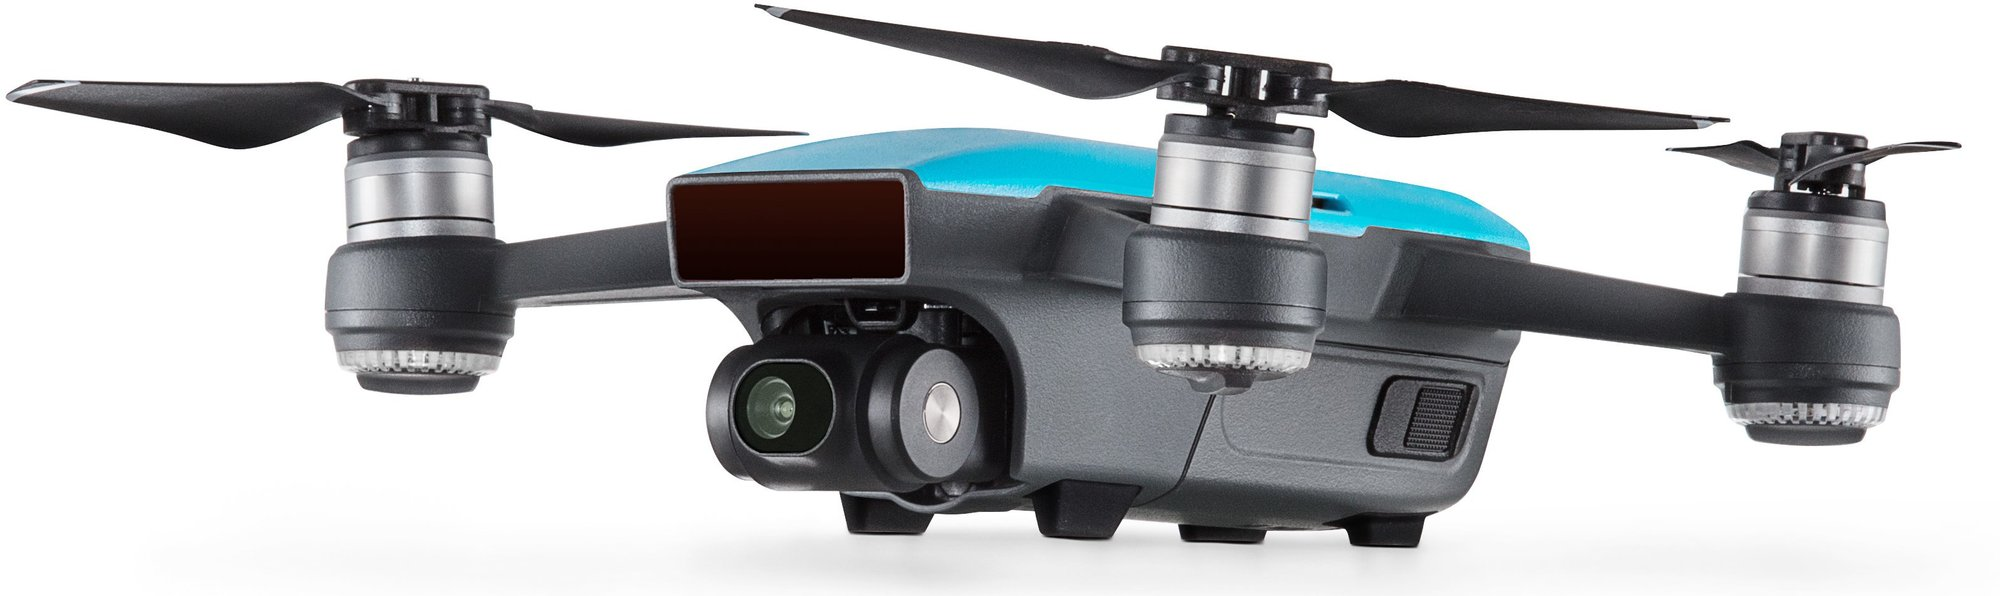 DJI Spark Fly More Combo Camera drone